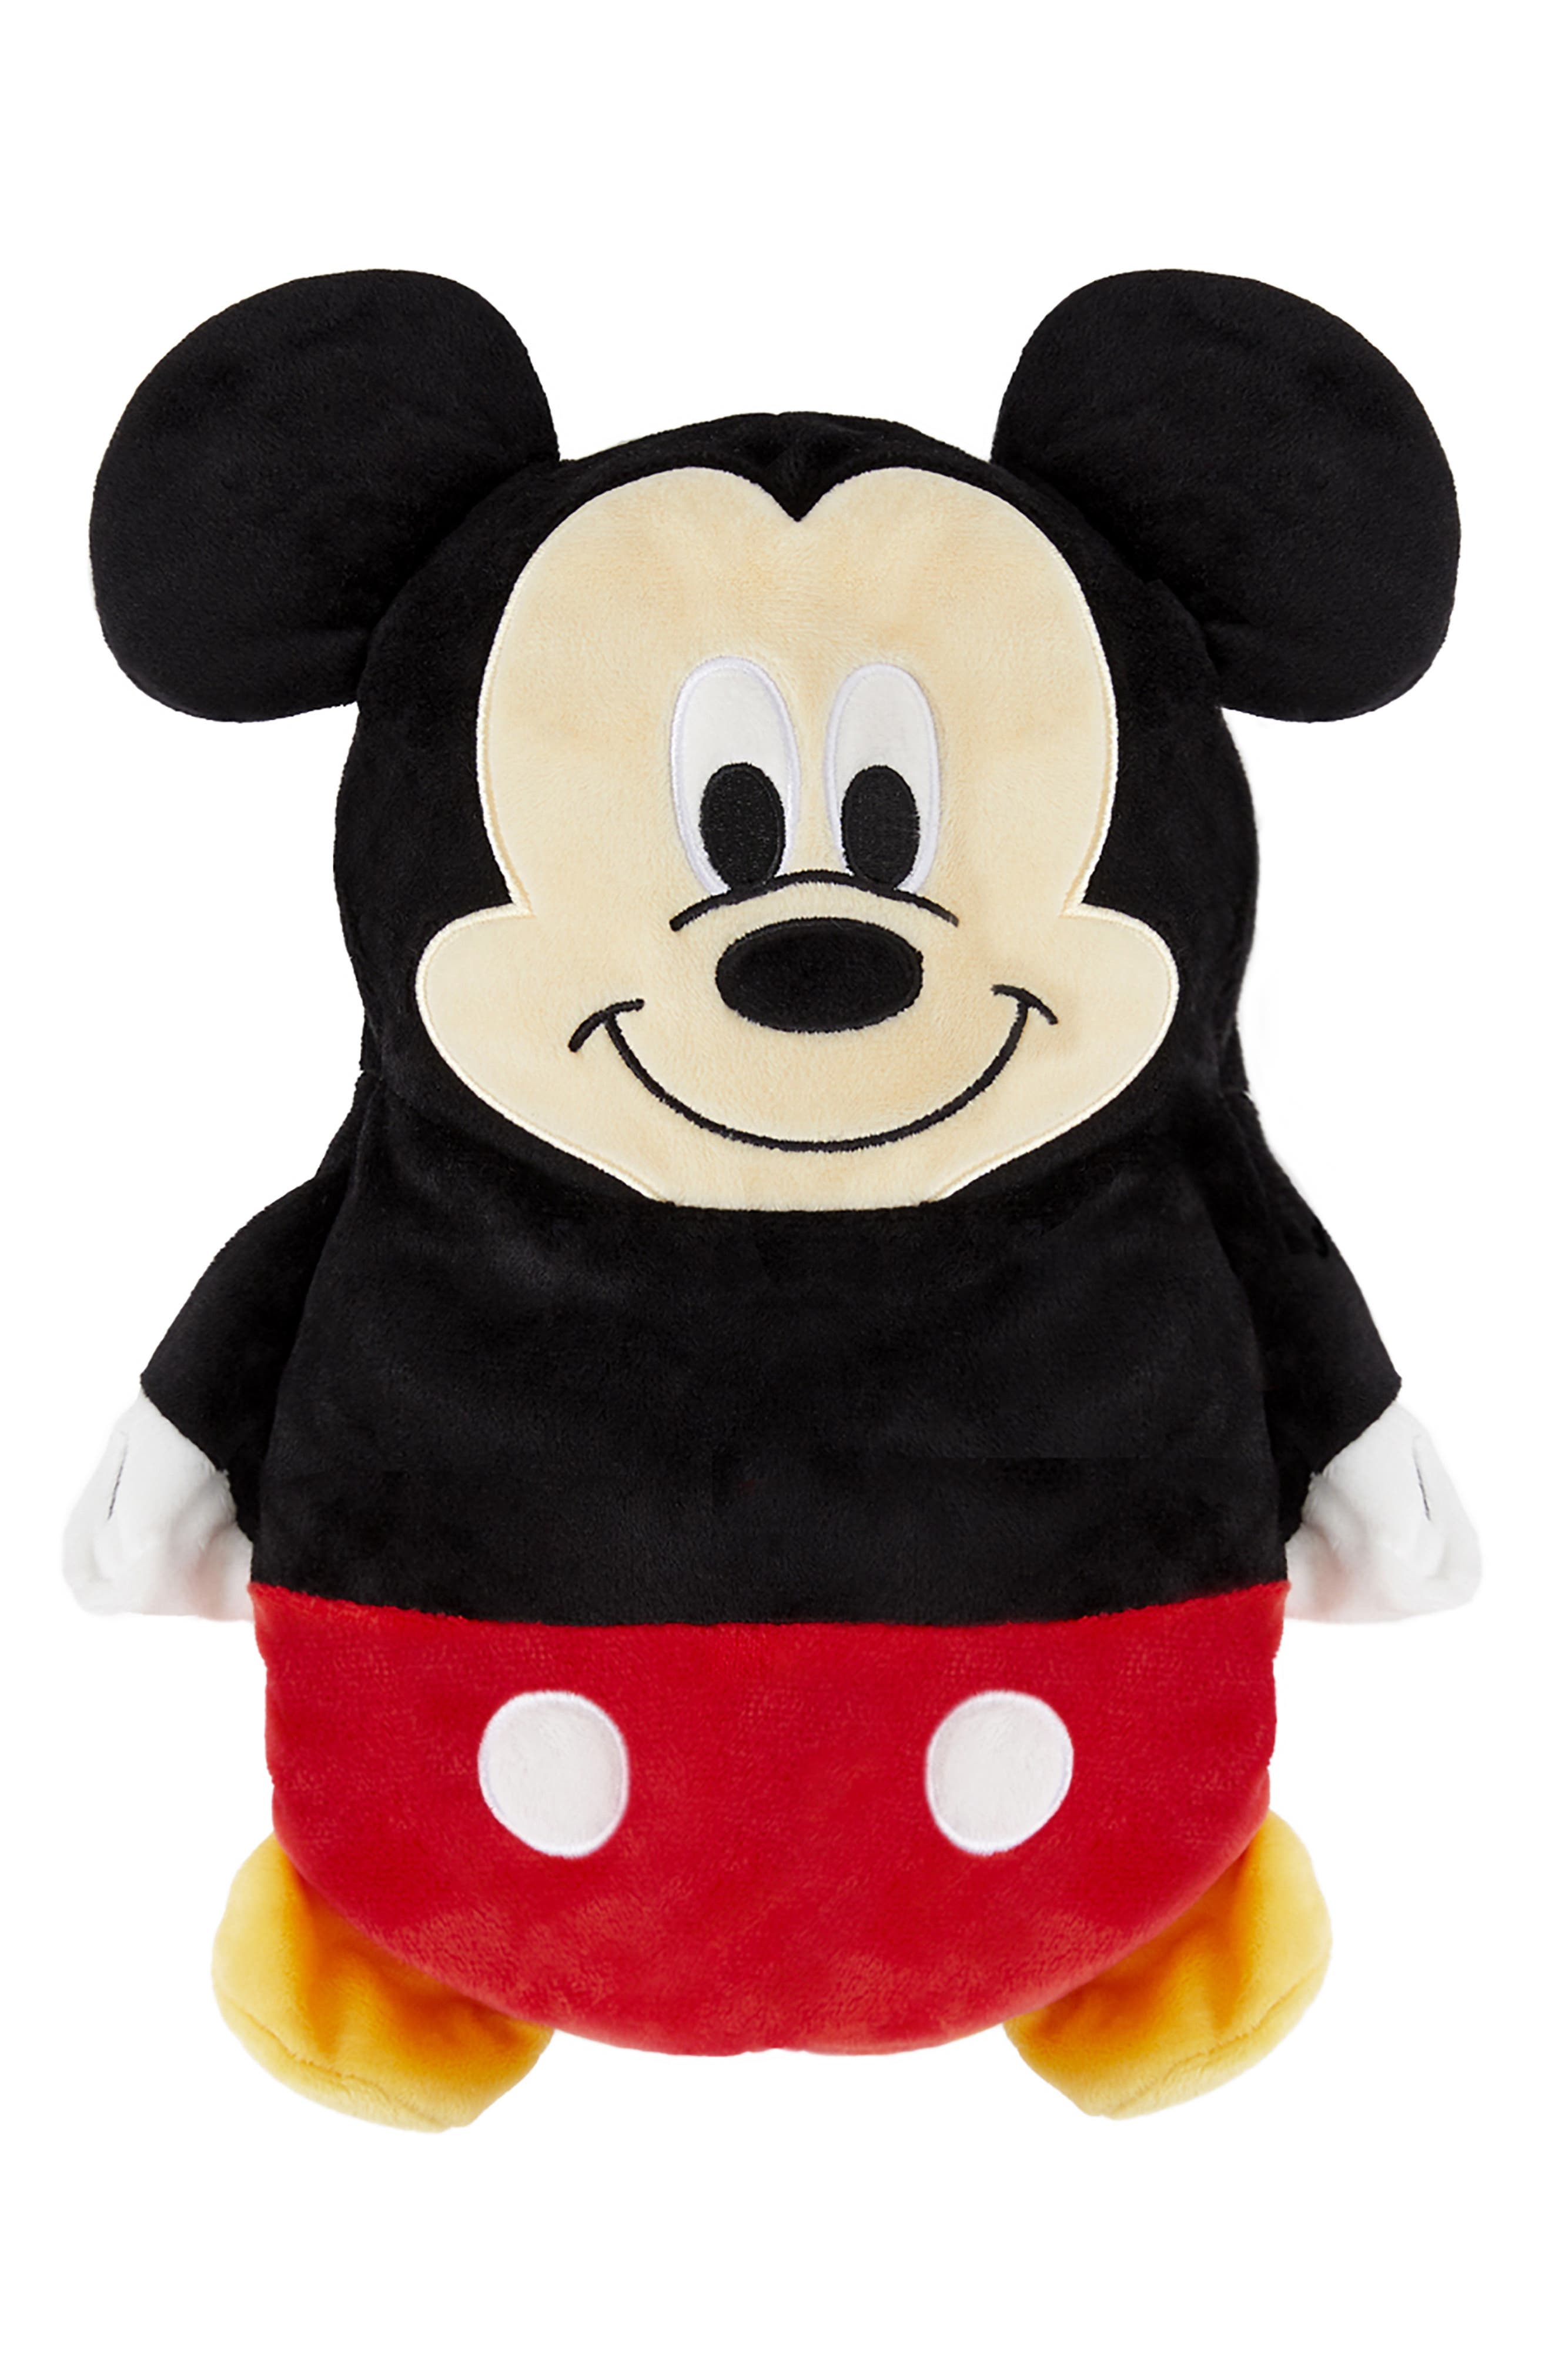 Mickey Mouse<sup>®</sup> 2-in-1 Stuffed Animal Hoodie,                             Main thumbnail 1, color,                             BLACK / RED MIX